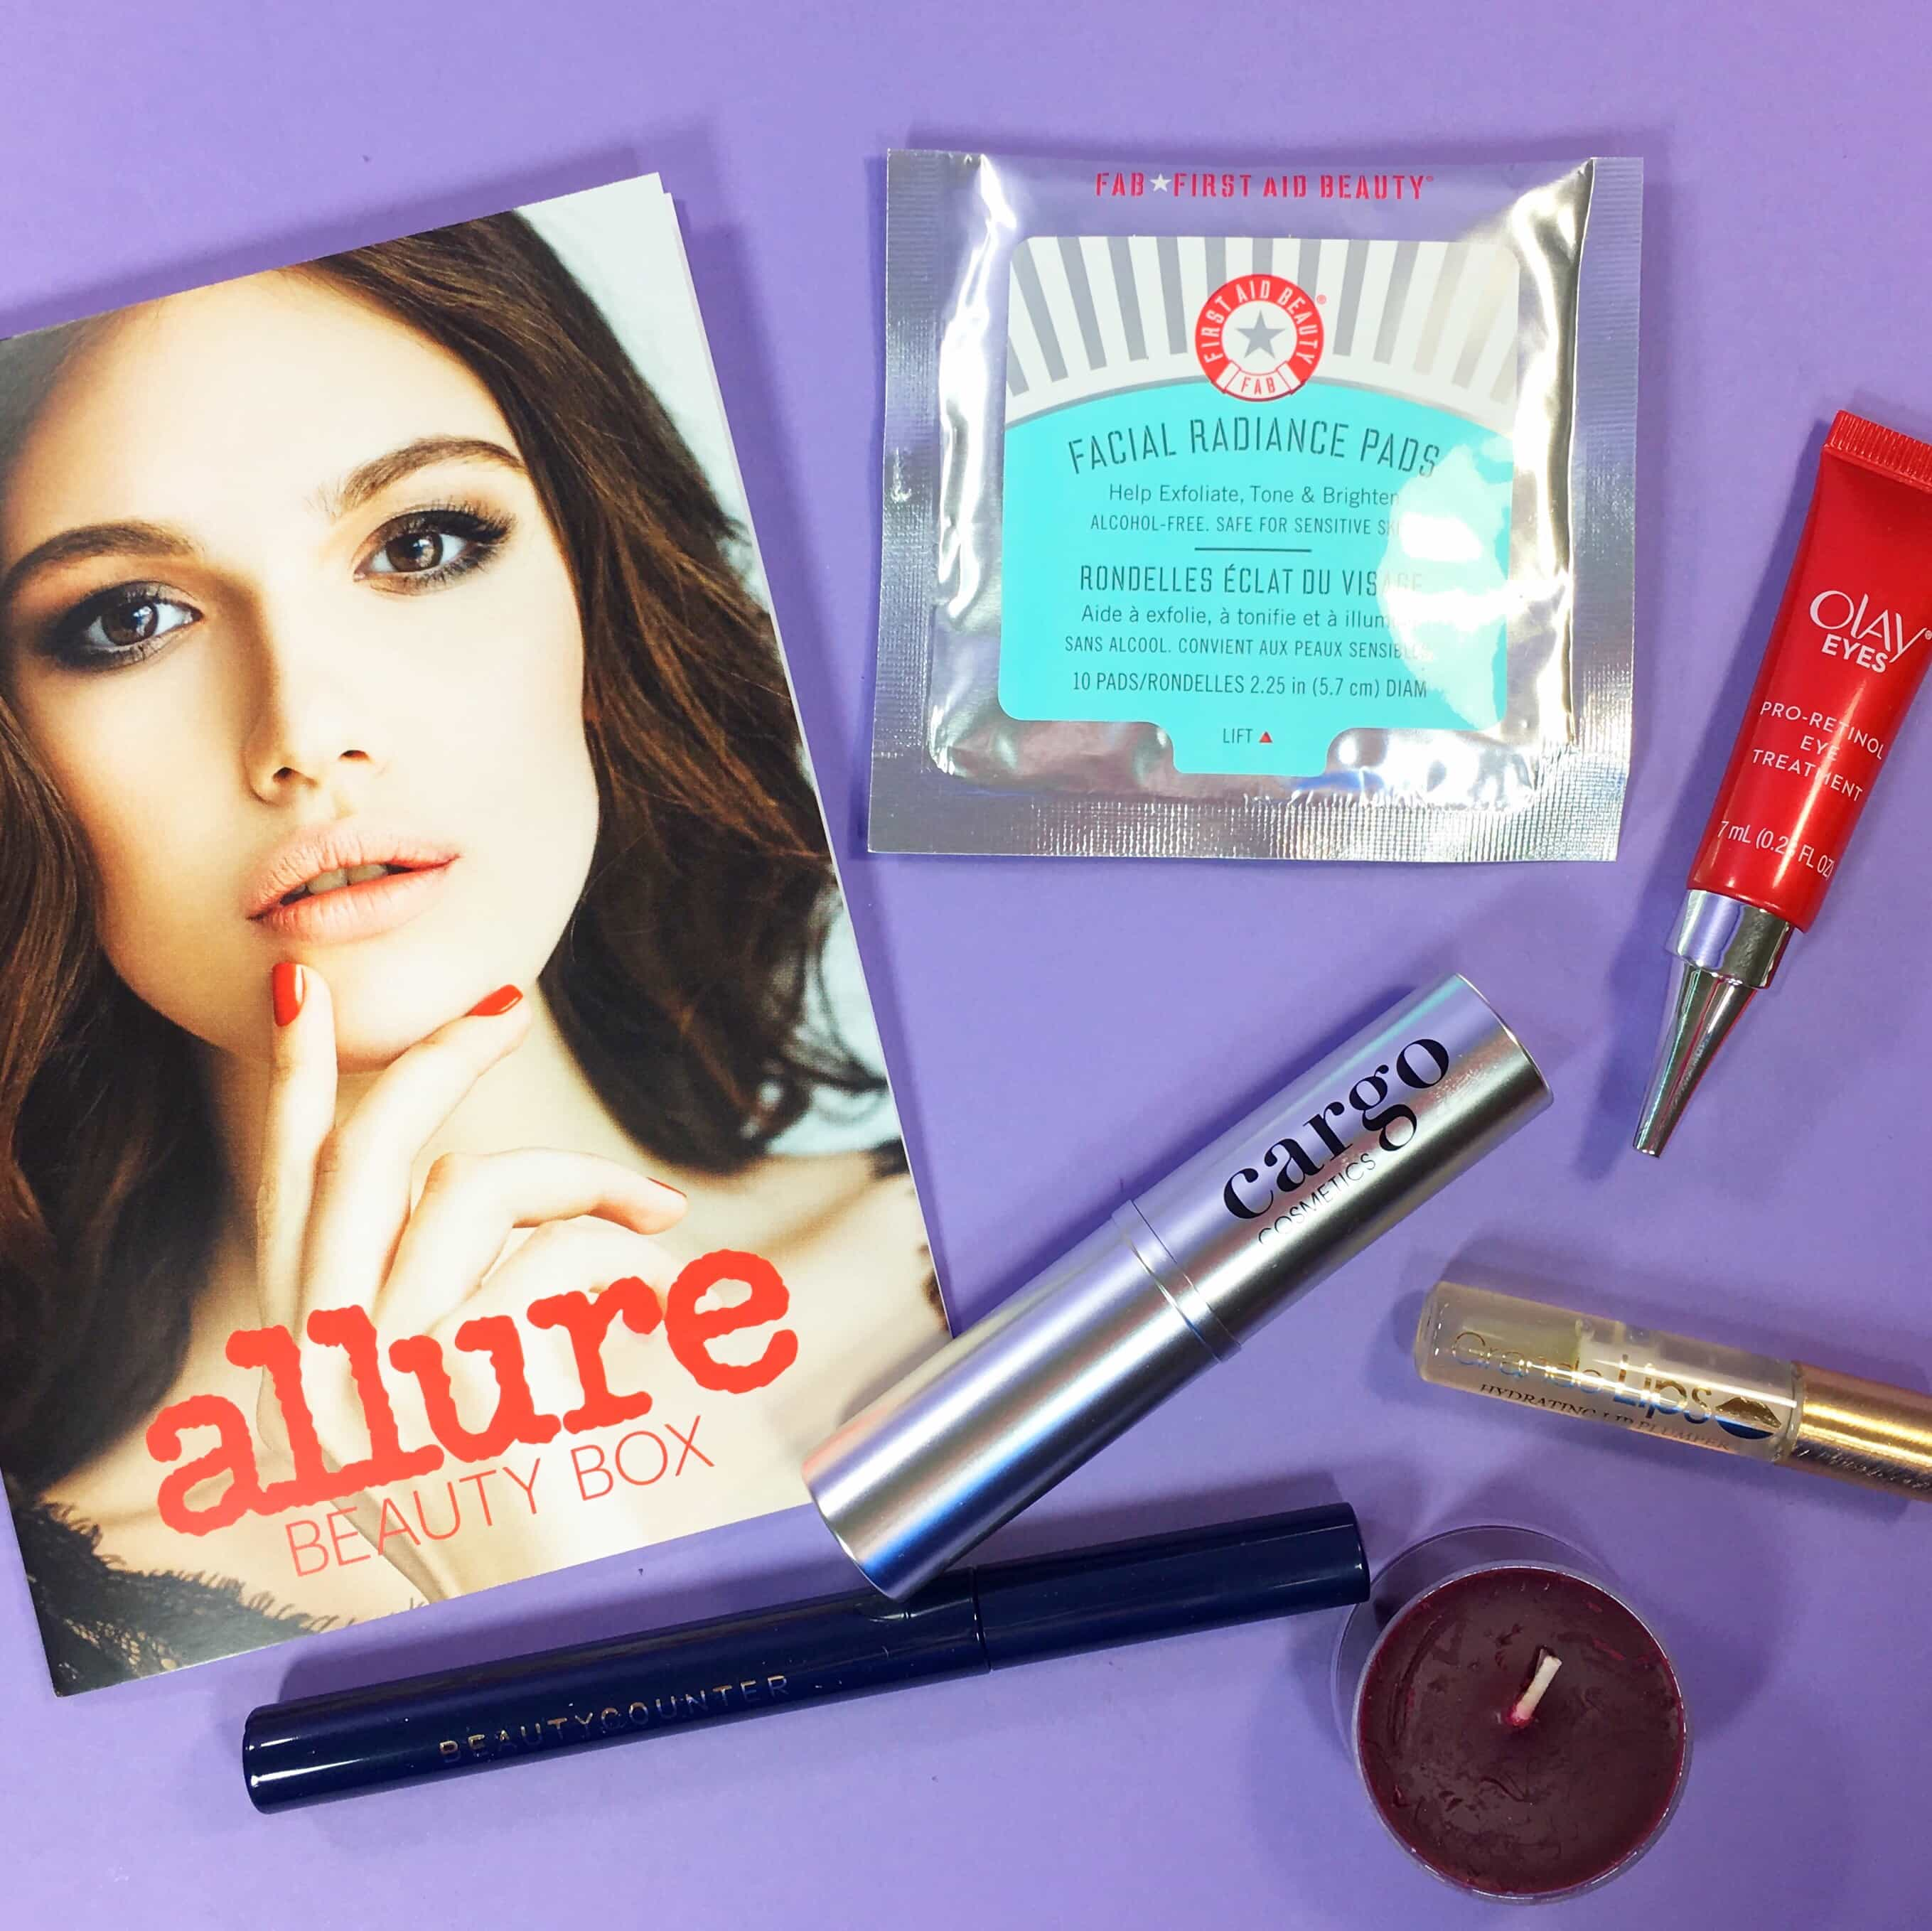 Allure Beauty Box February 2017 Subscription Box Review & Coupon